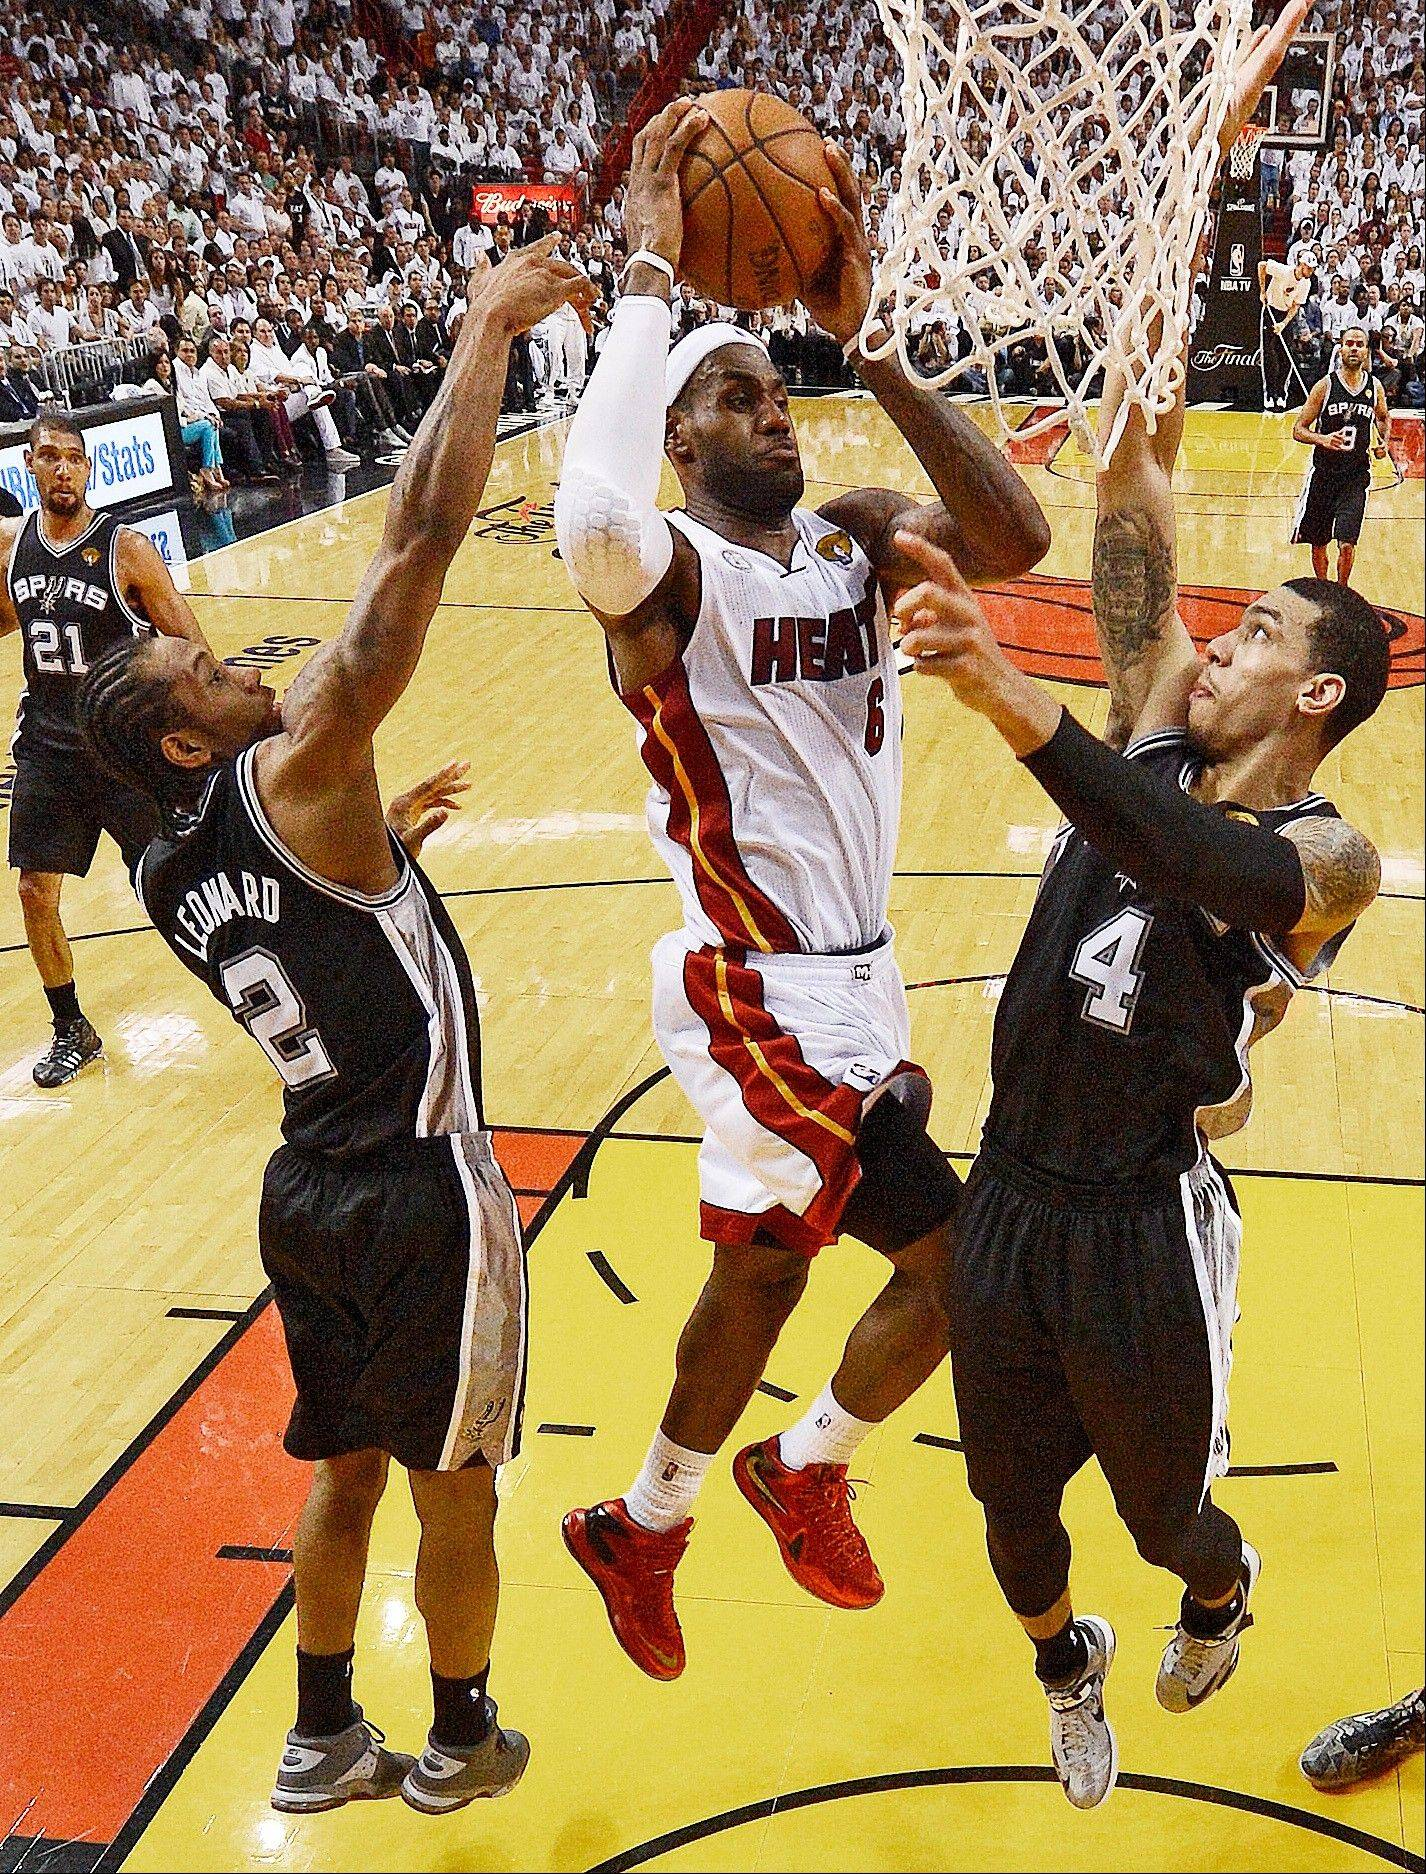 The Miami Heat's LeBron James (6) shoots against San Antonio Spurs' Kawhi Leonard (2) and Danny Green (4) during the first half of Game 7.